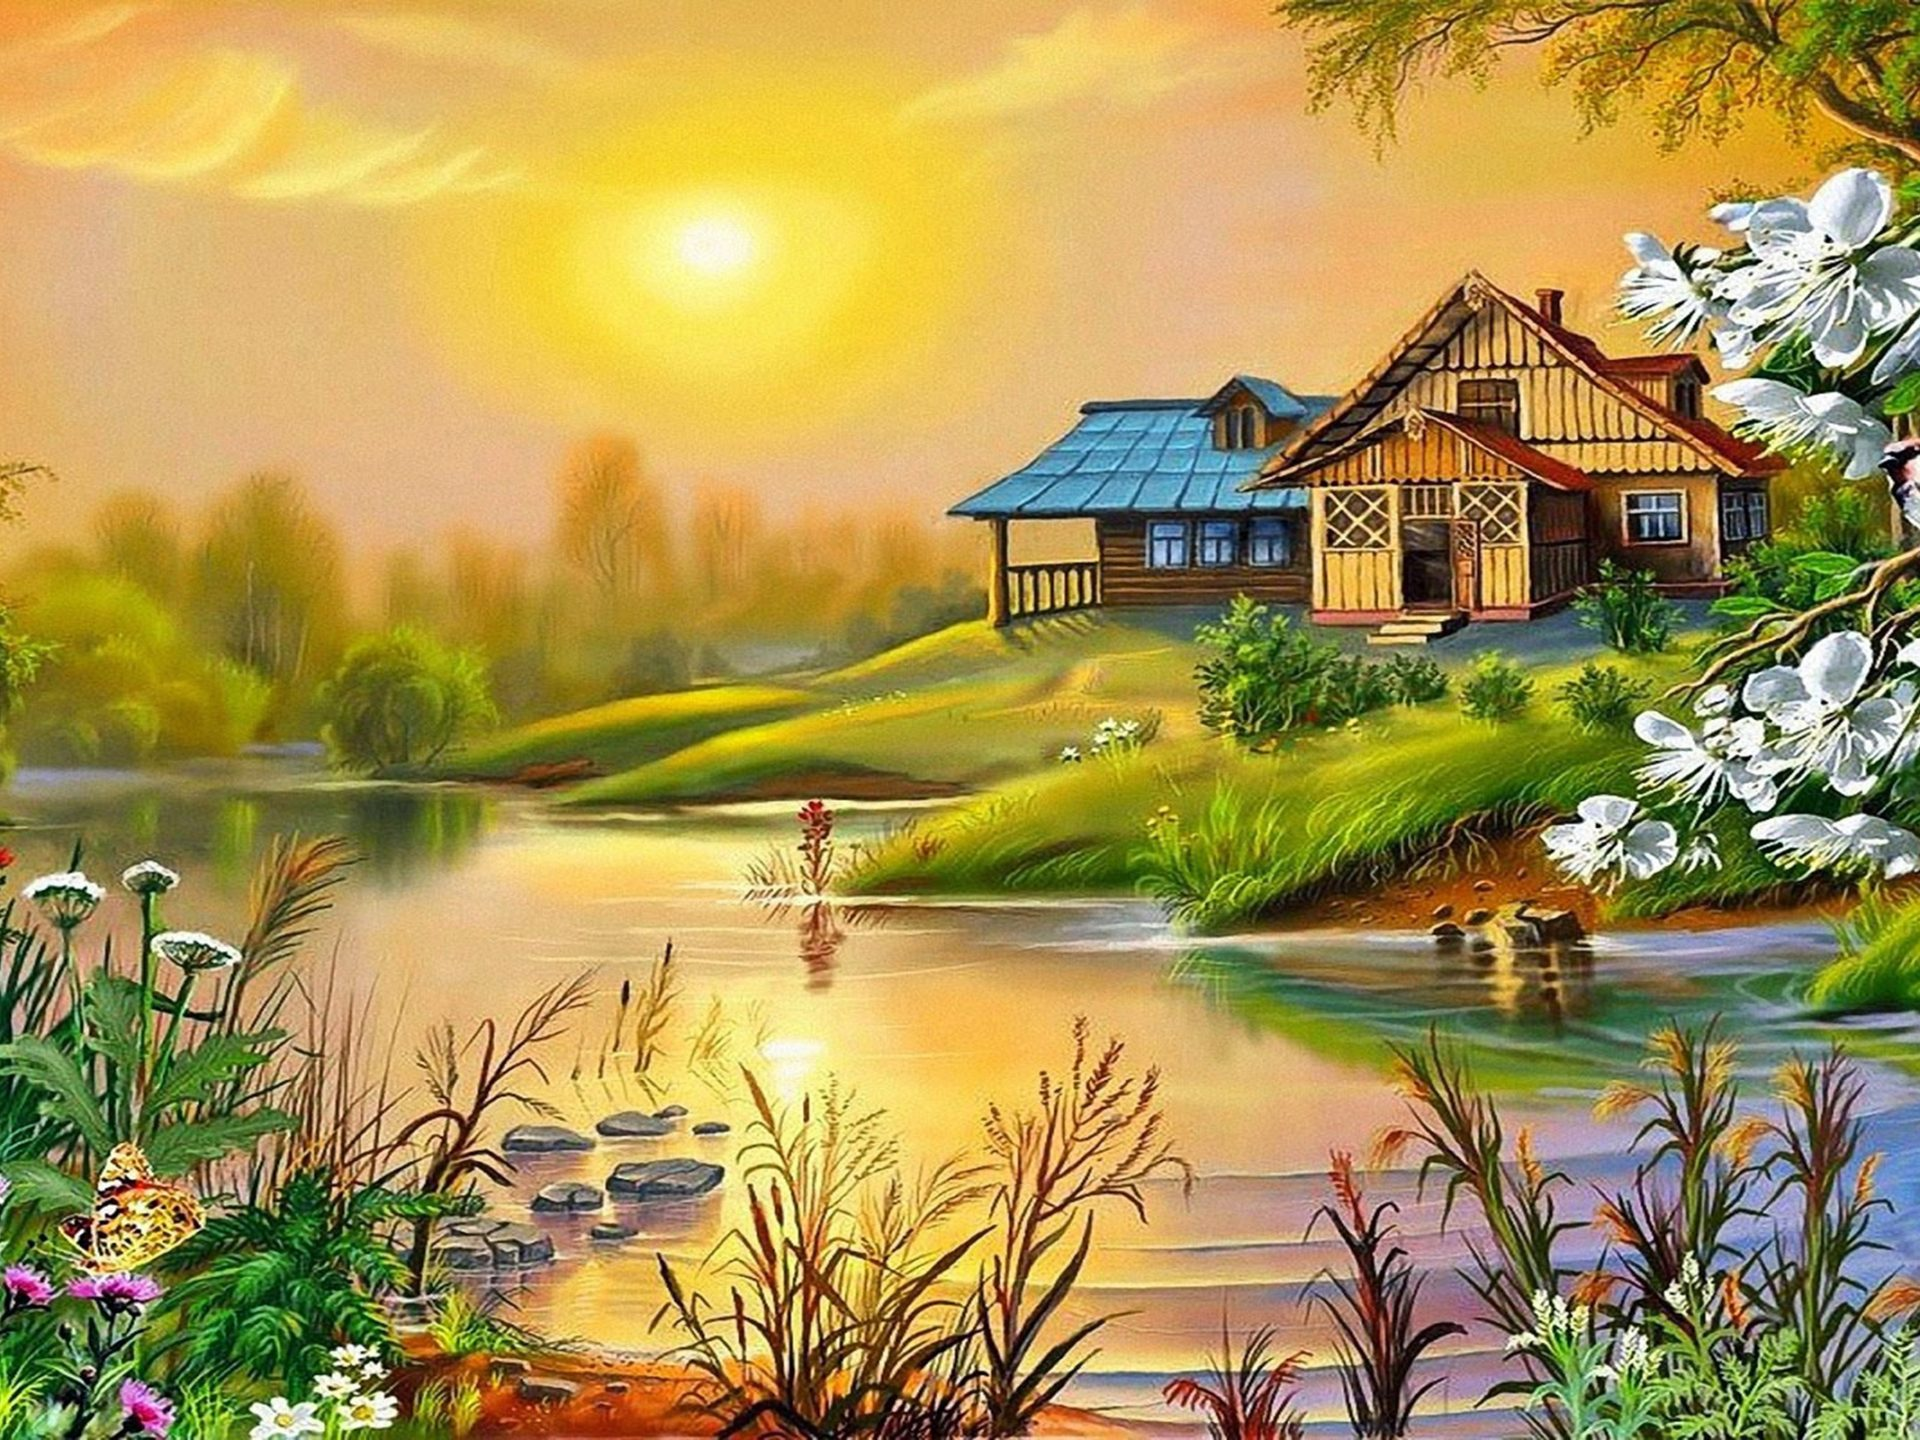 Fall Wallpaper For Tablet Spring Sun House River Bird Blossoming Trees 0534